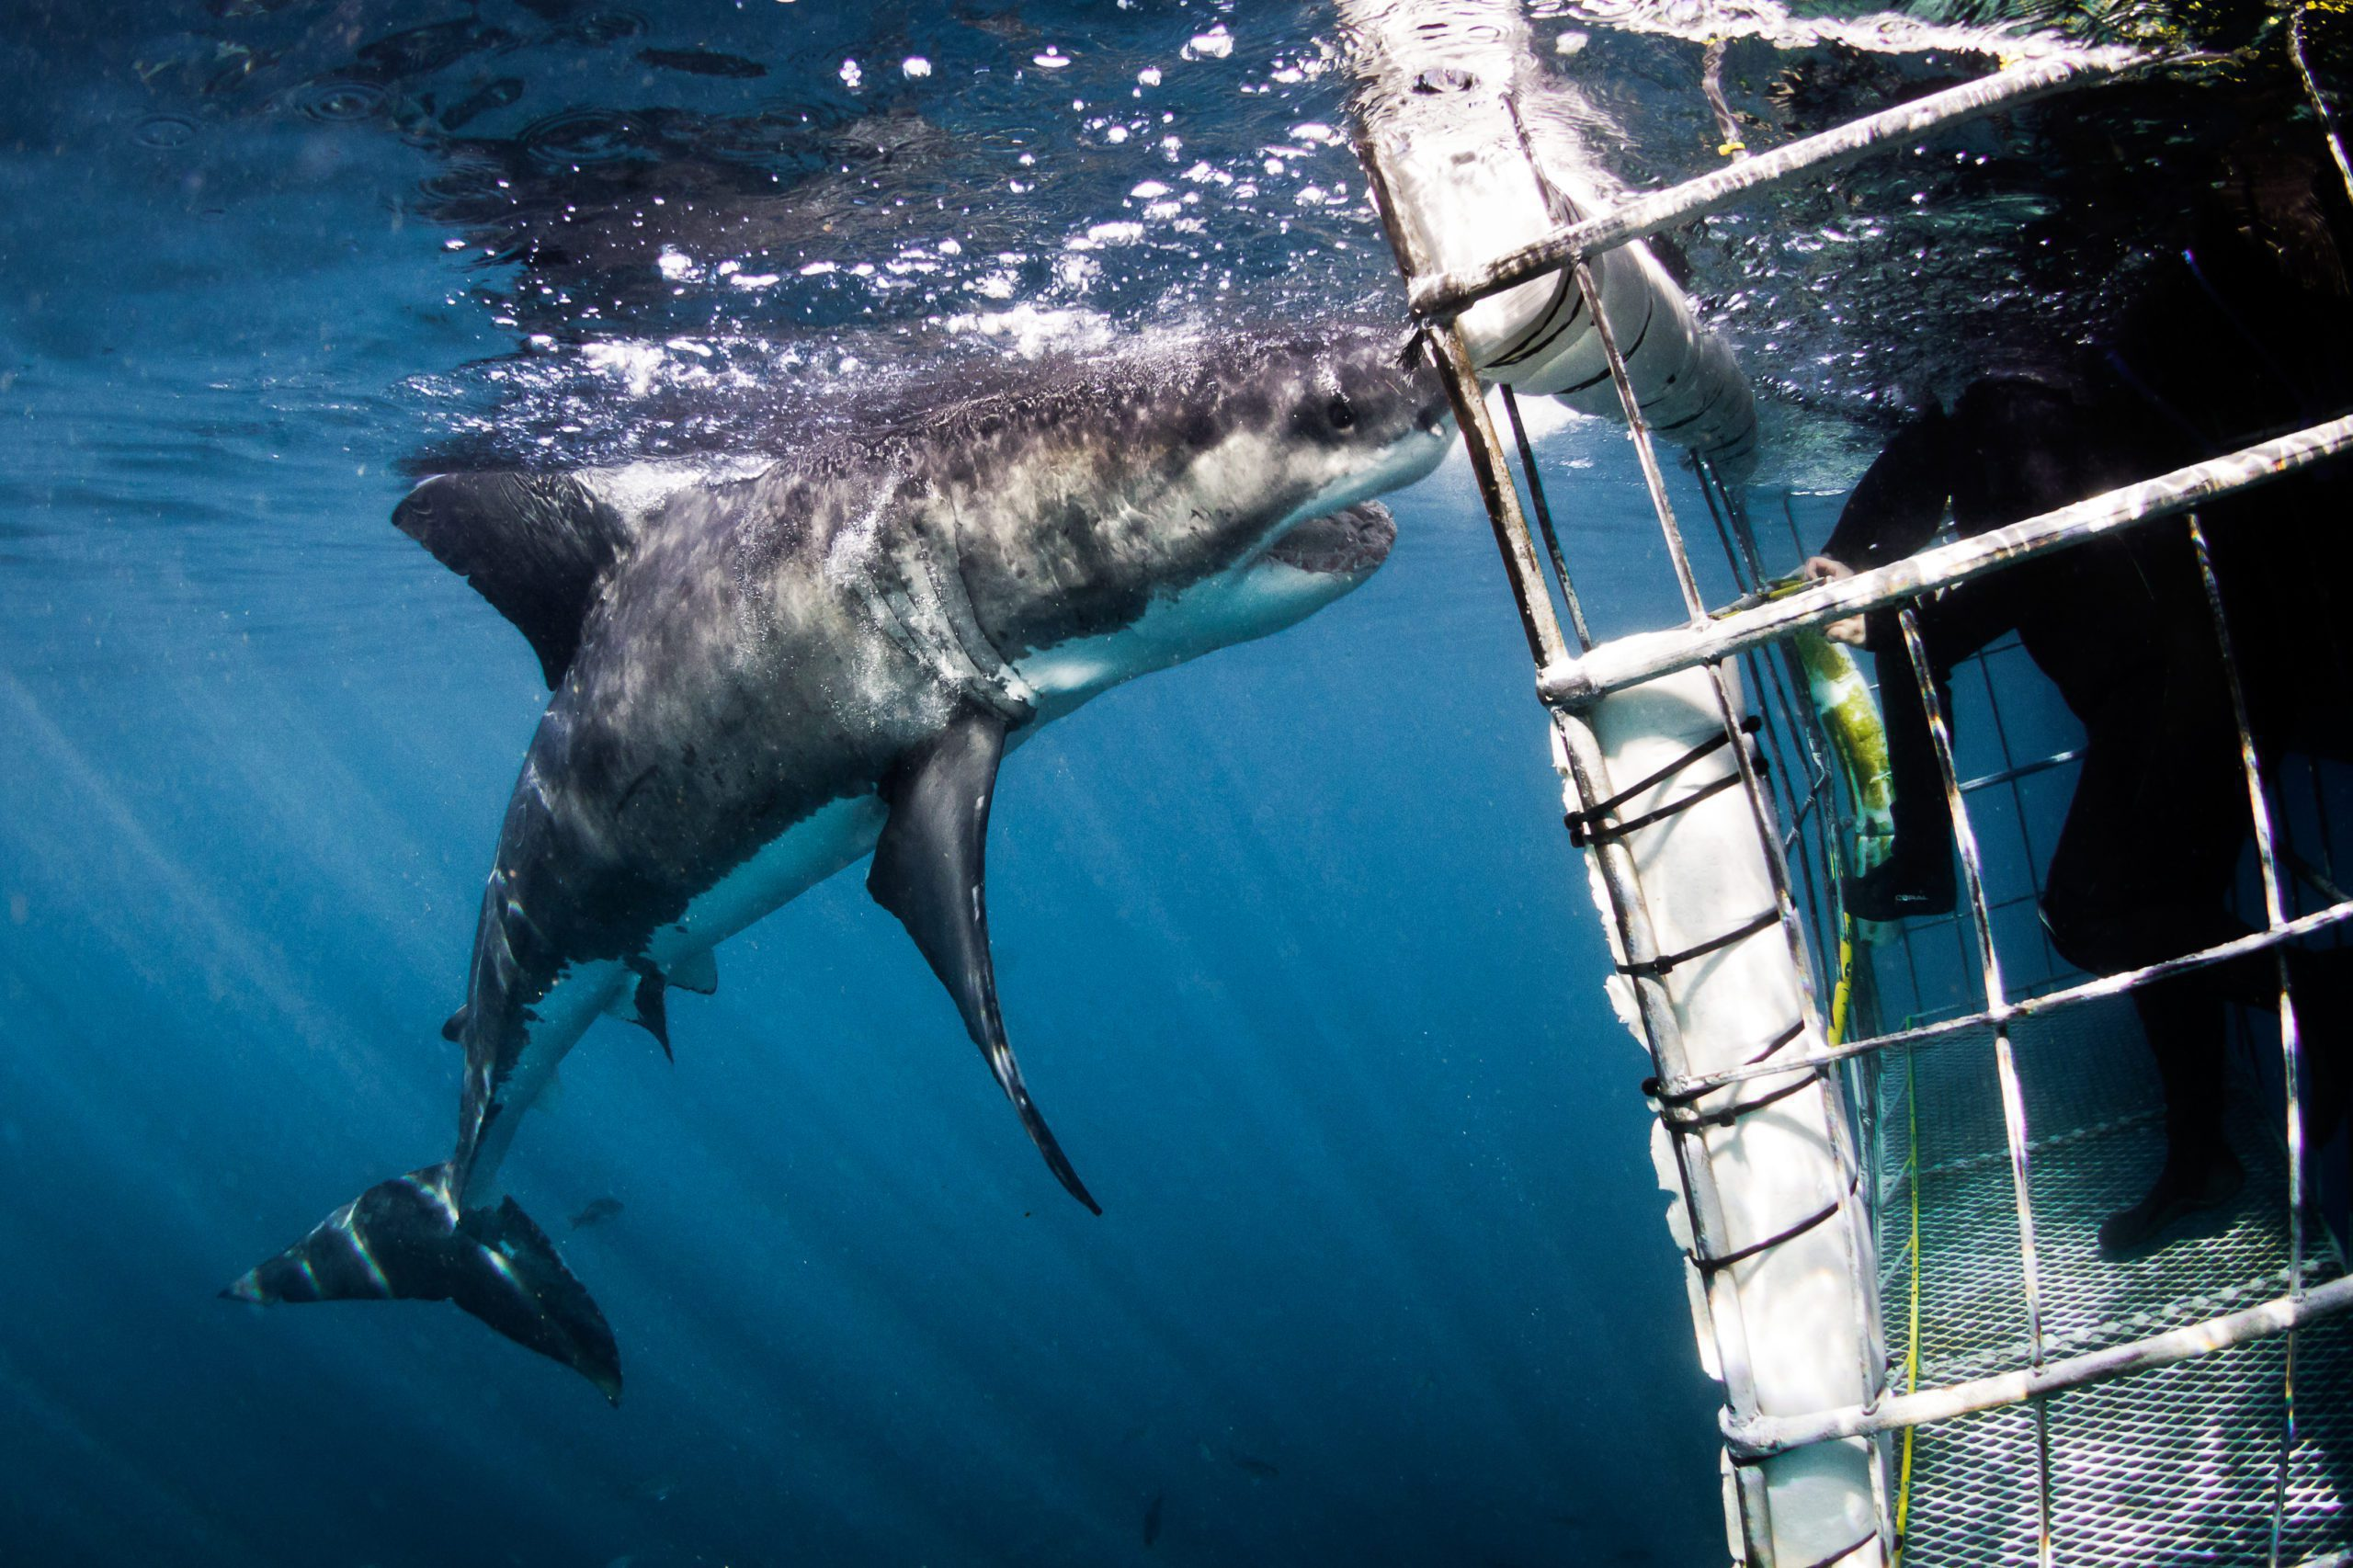 cage diving safari white shark south africa cape town